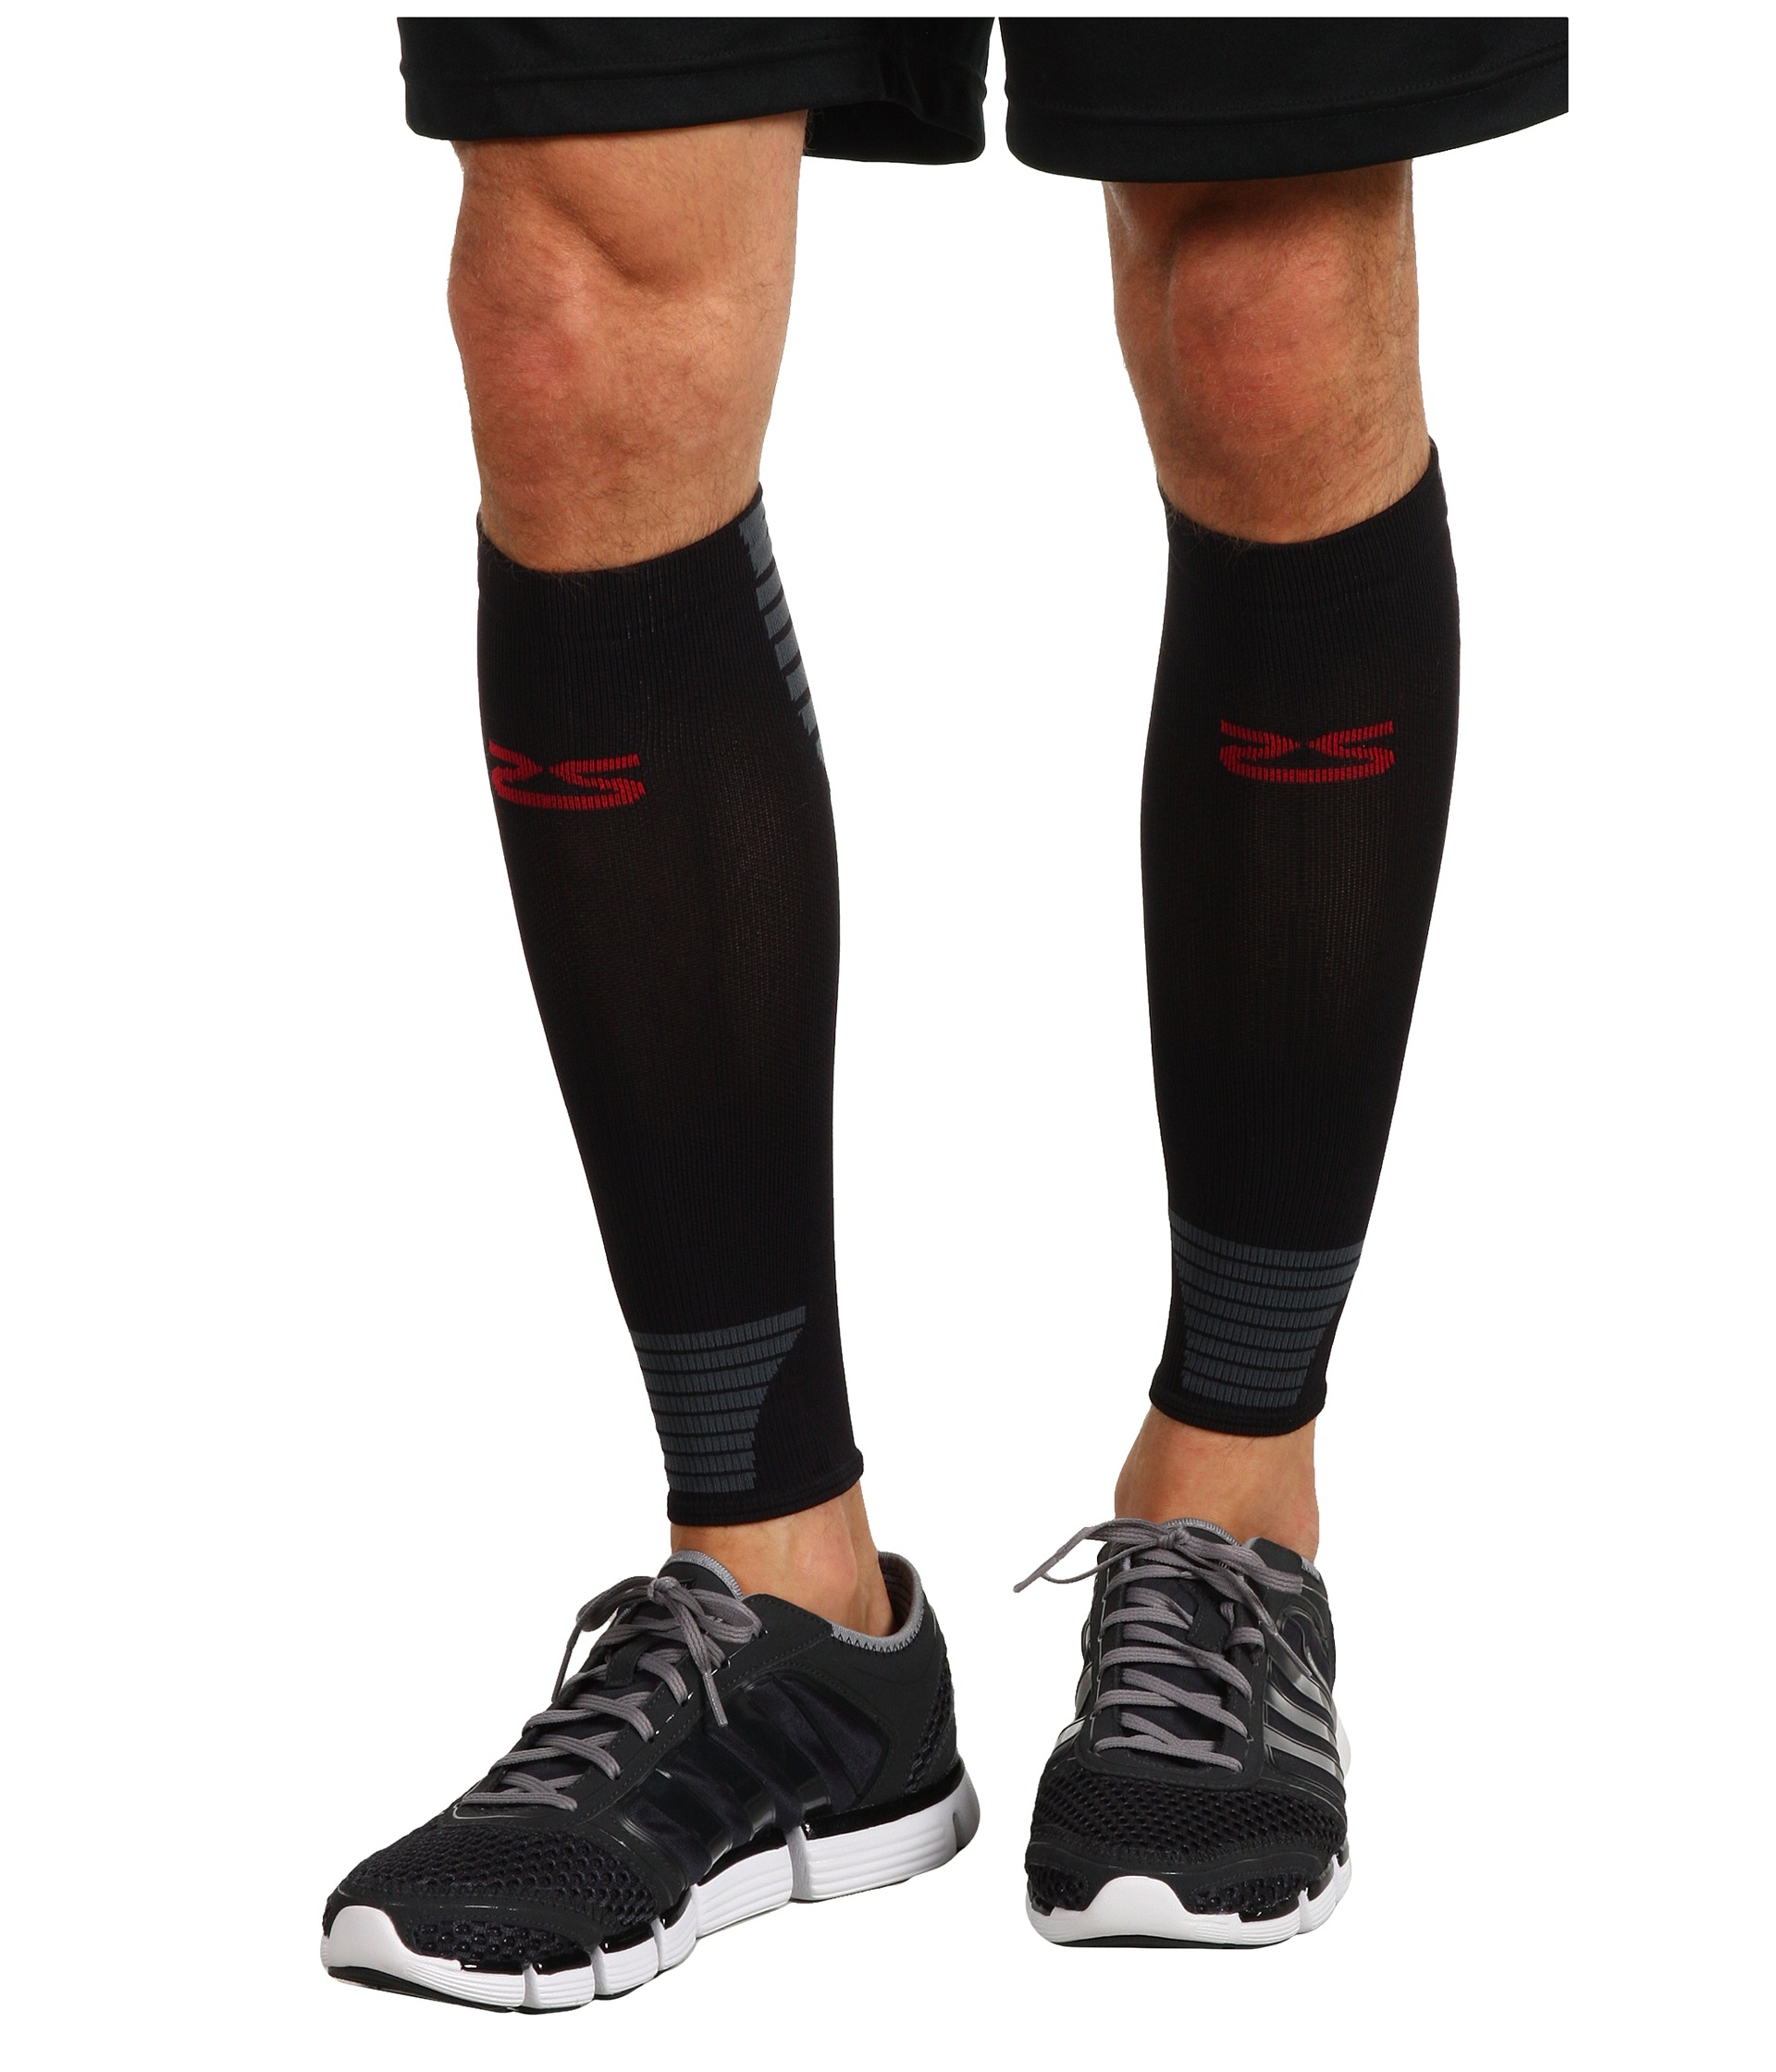 Zensah Ultra Compression Leg Sleeves - Zappos.com Free ...